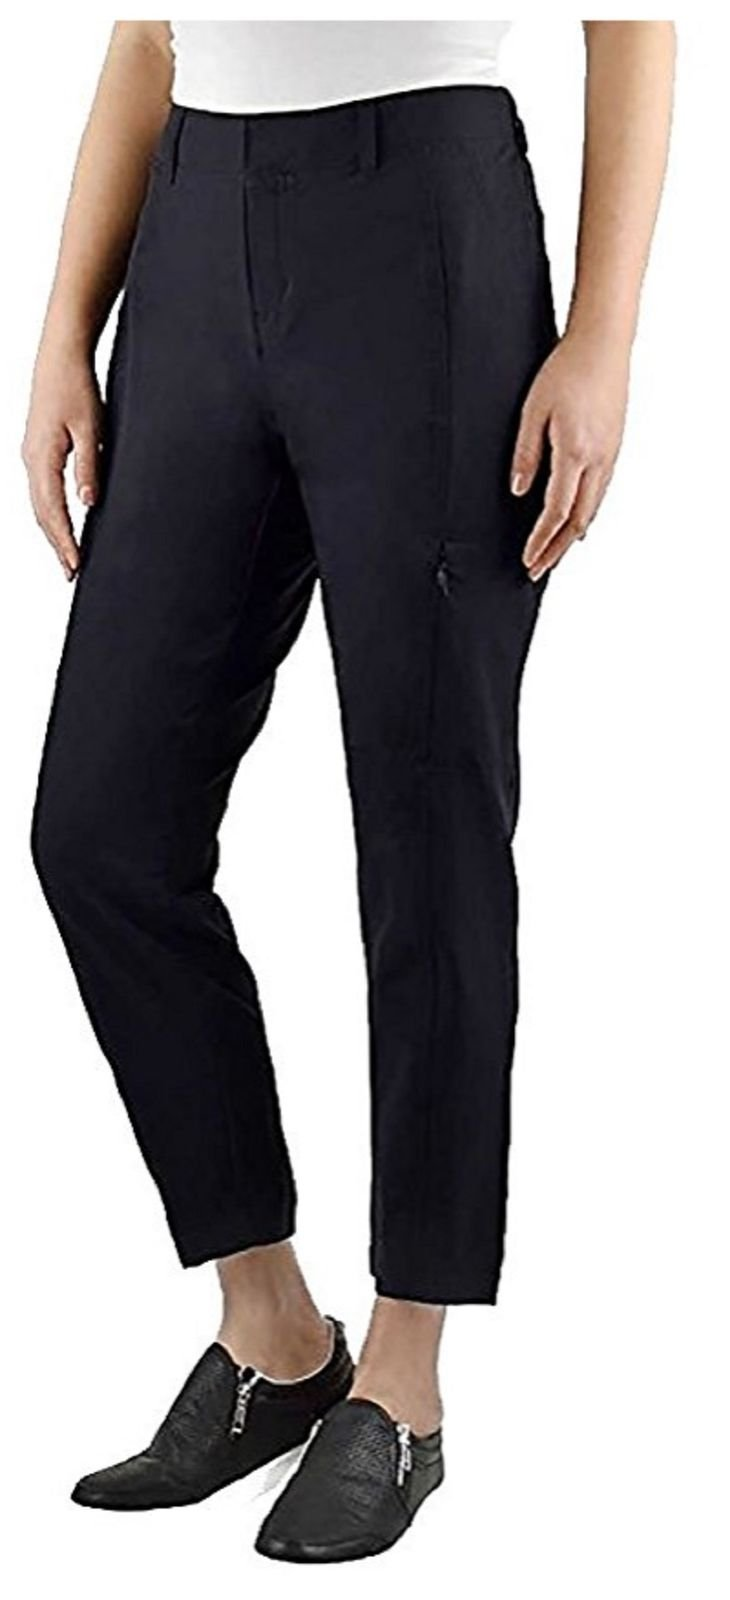 Kirkland Signature Ladies' Ankle Length Travel Pant (12, Black)